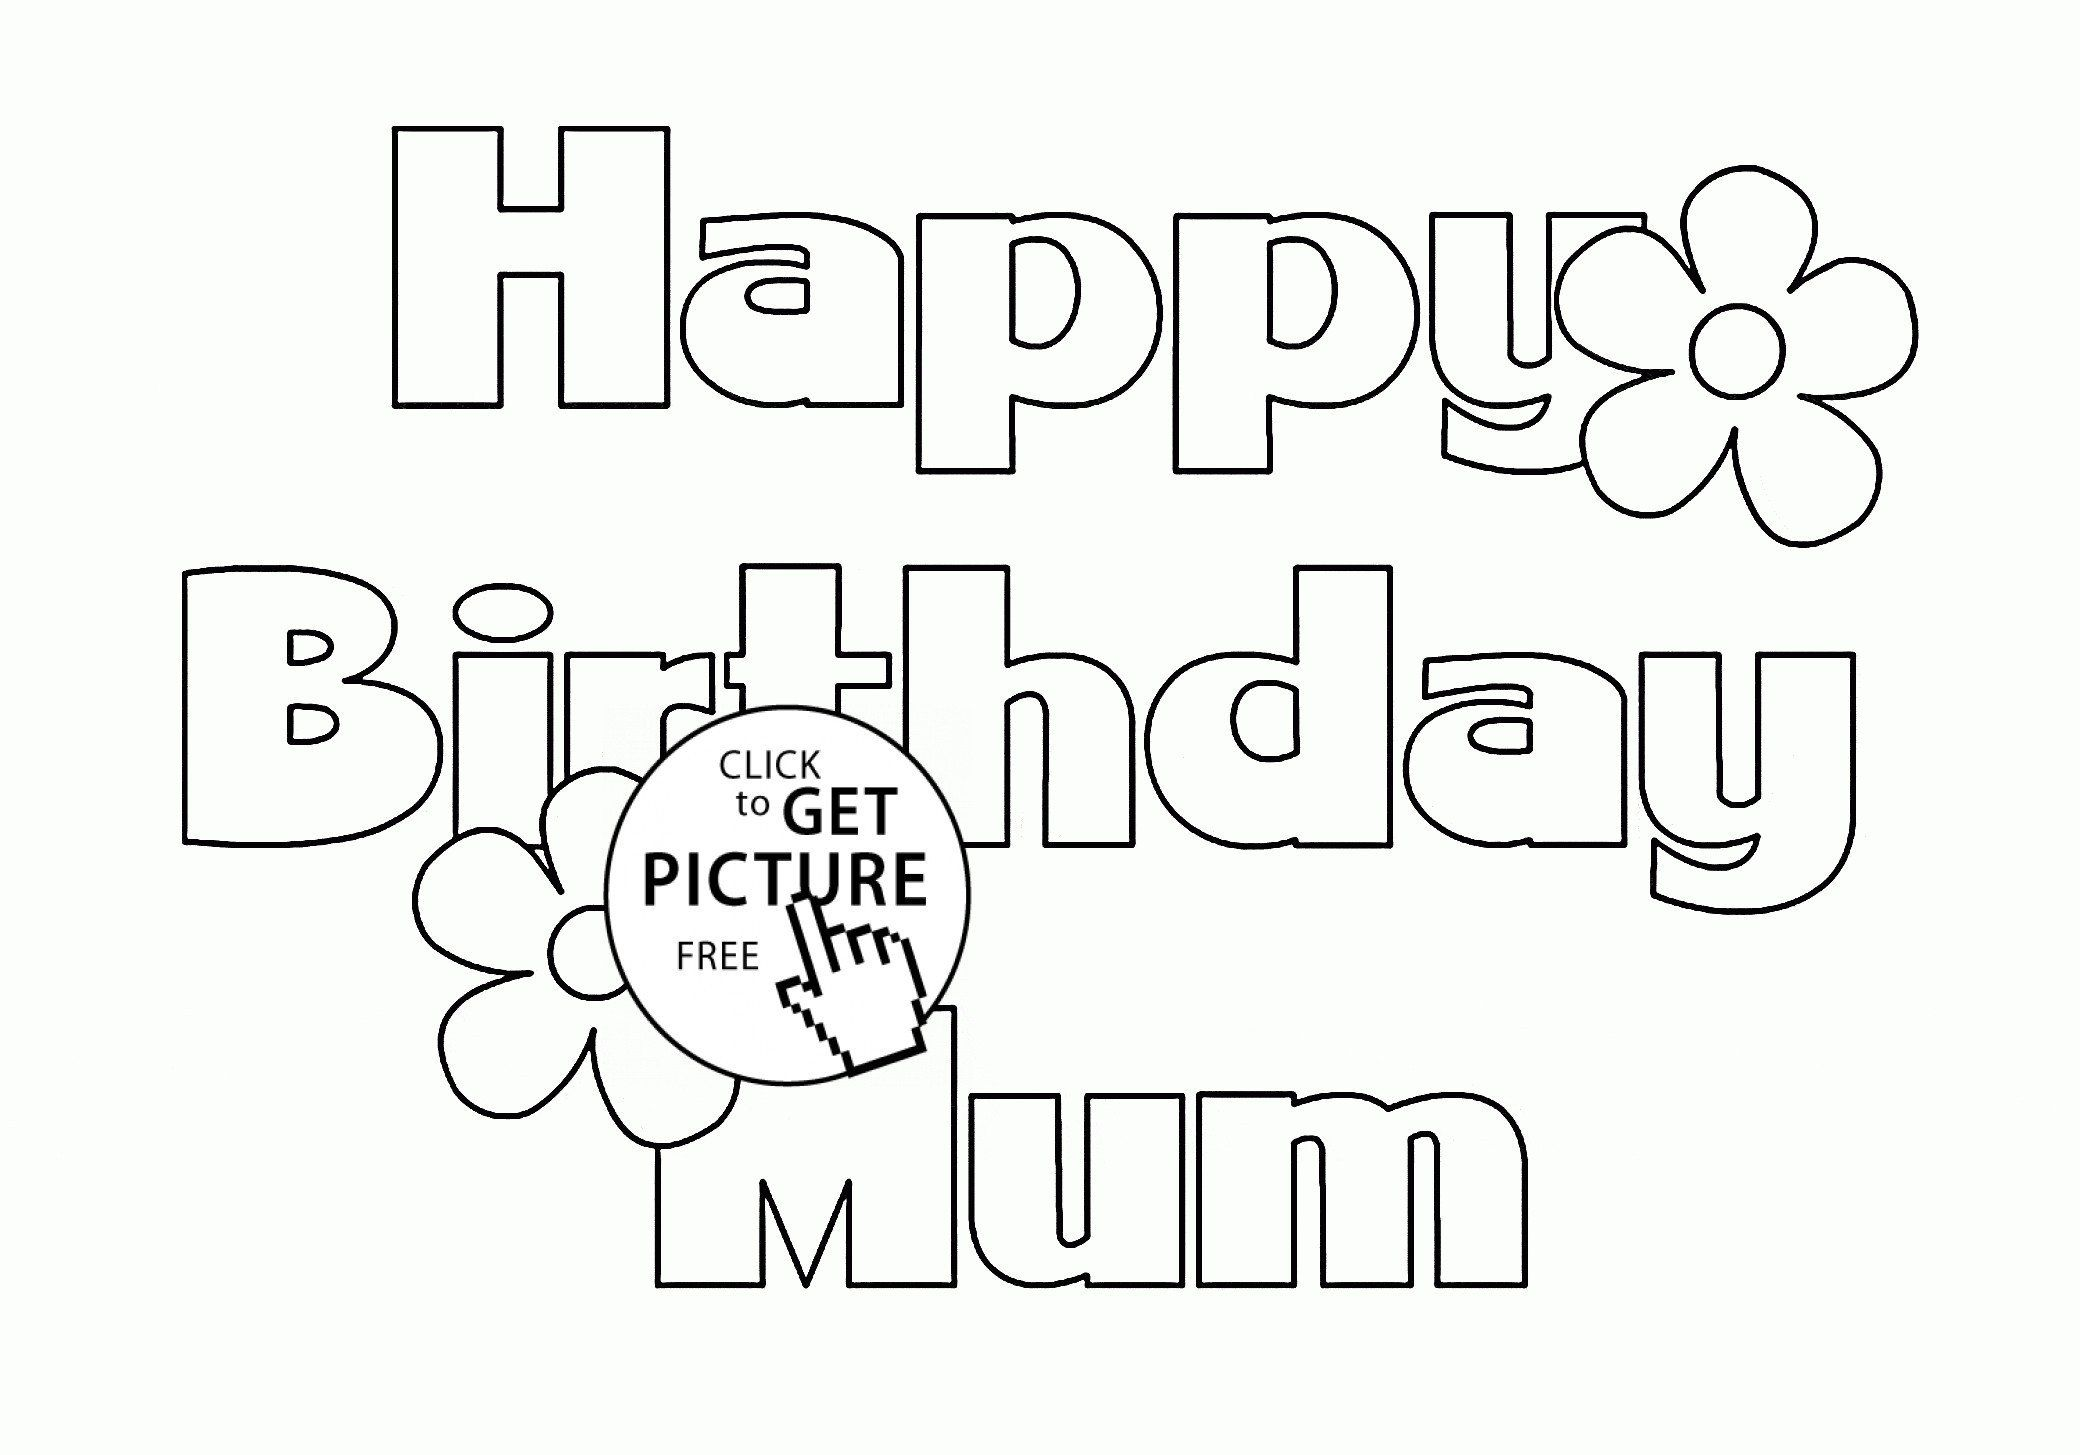 Happy Birthday Coloring Card Lovely 49 Awesome Happy Birthday Coloring Pages For Adults